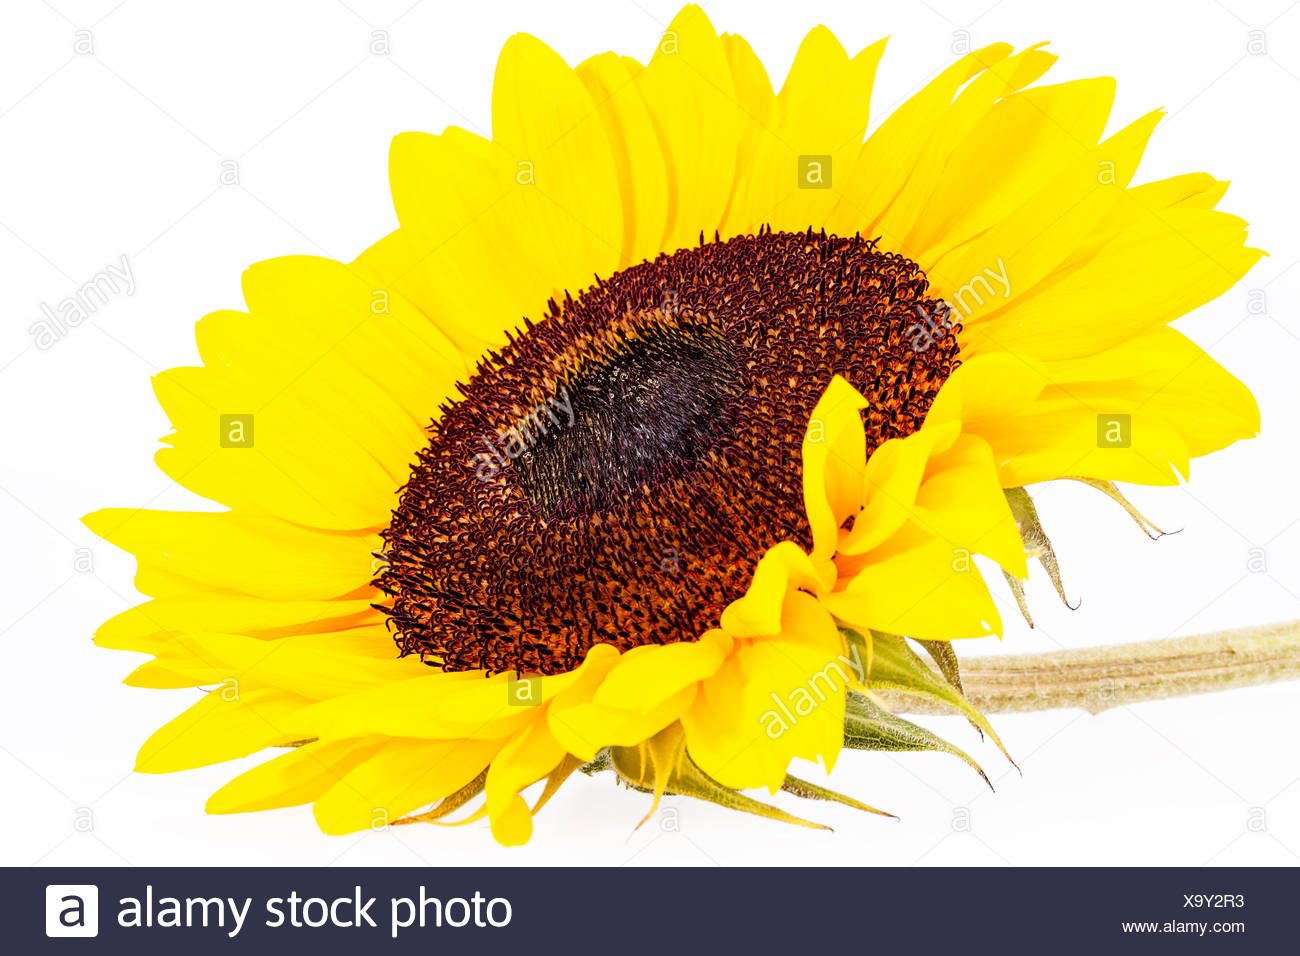 Single Yellow Flower Of Sunflower Isolated On White Background